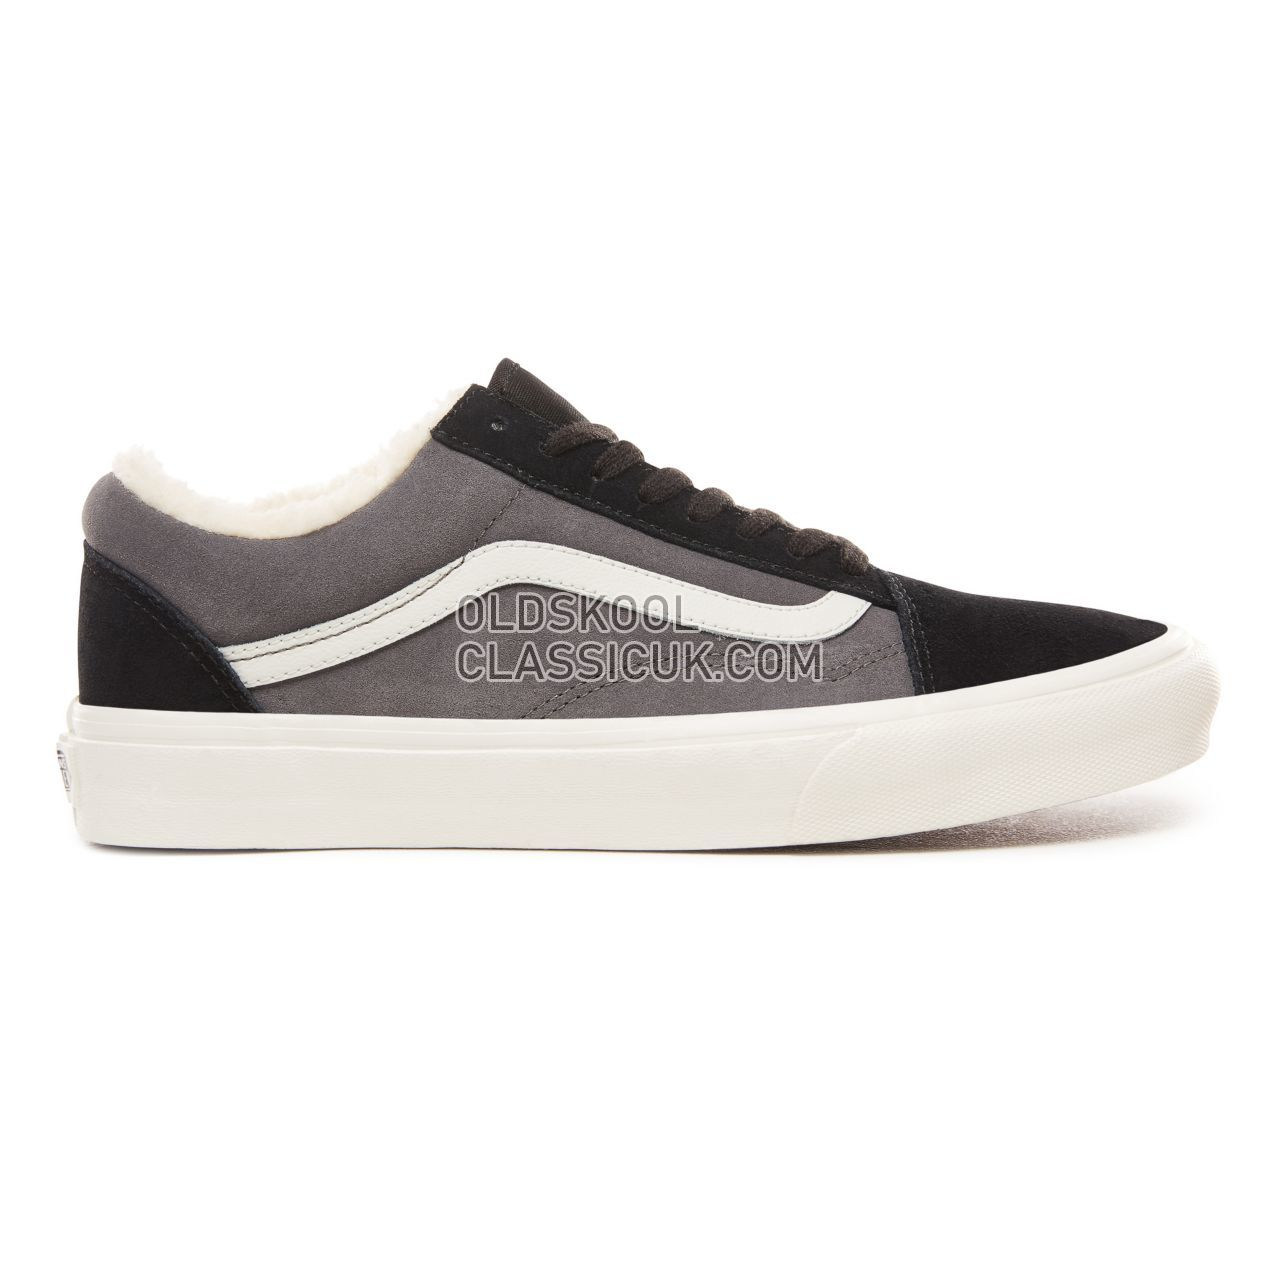 Vans Suede and Sherpa Old Skool Sneakers Mens Womens Unisex (Suede/Sherpa) Black/Pewter VN0A38G1UPE Shoes